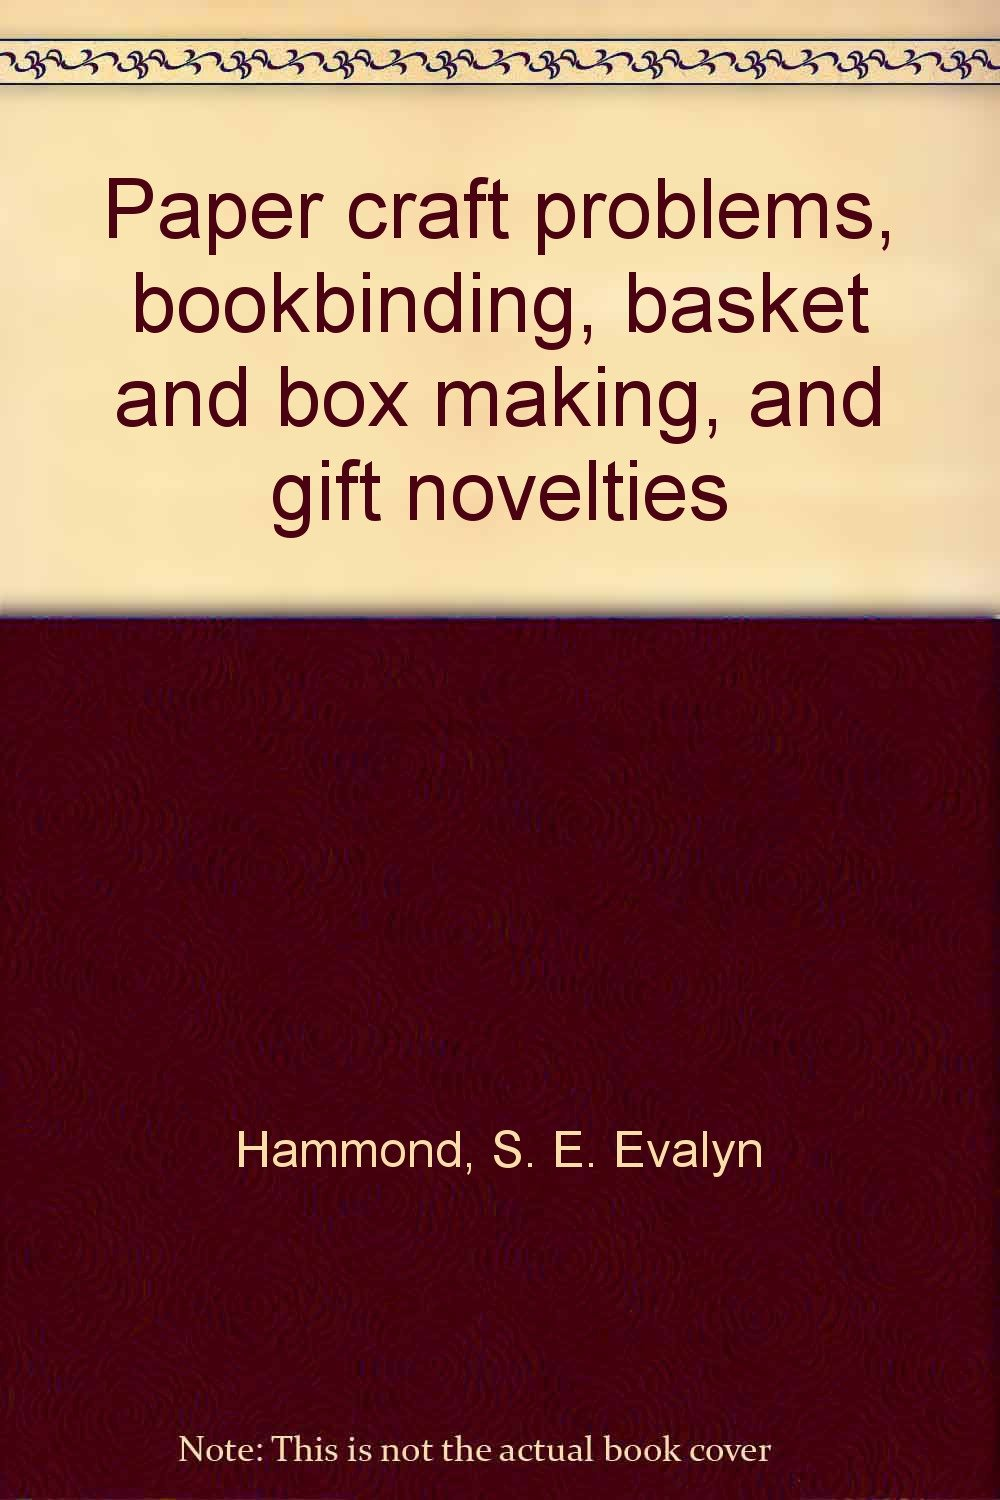 Paper craft problems, bookbinding, basket and box making, and gift novelties